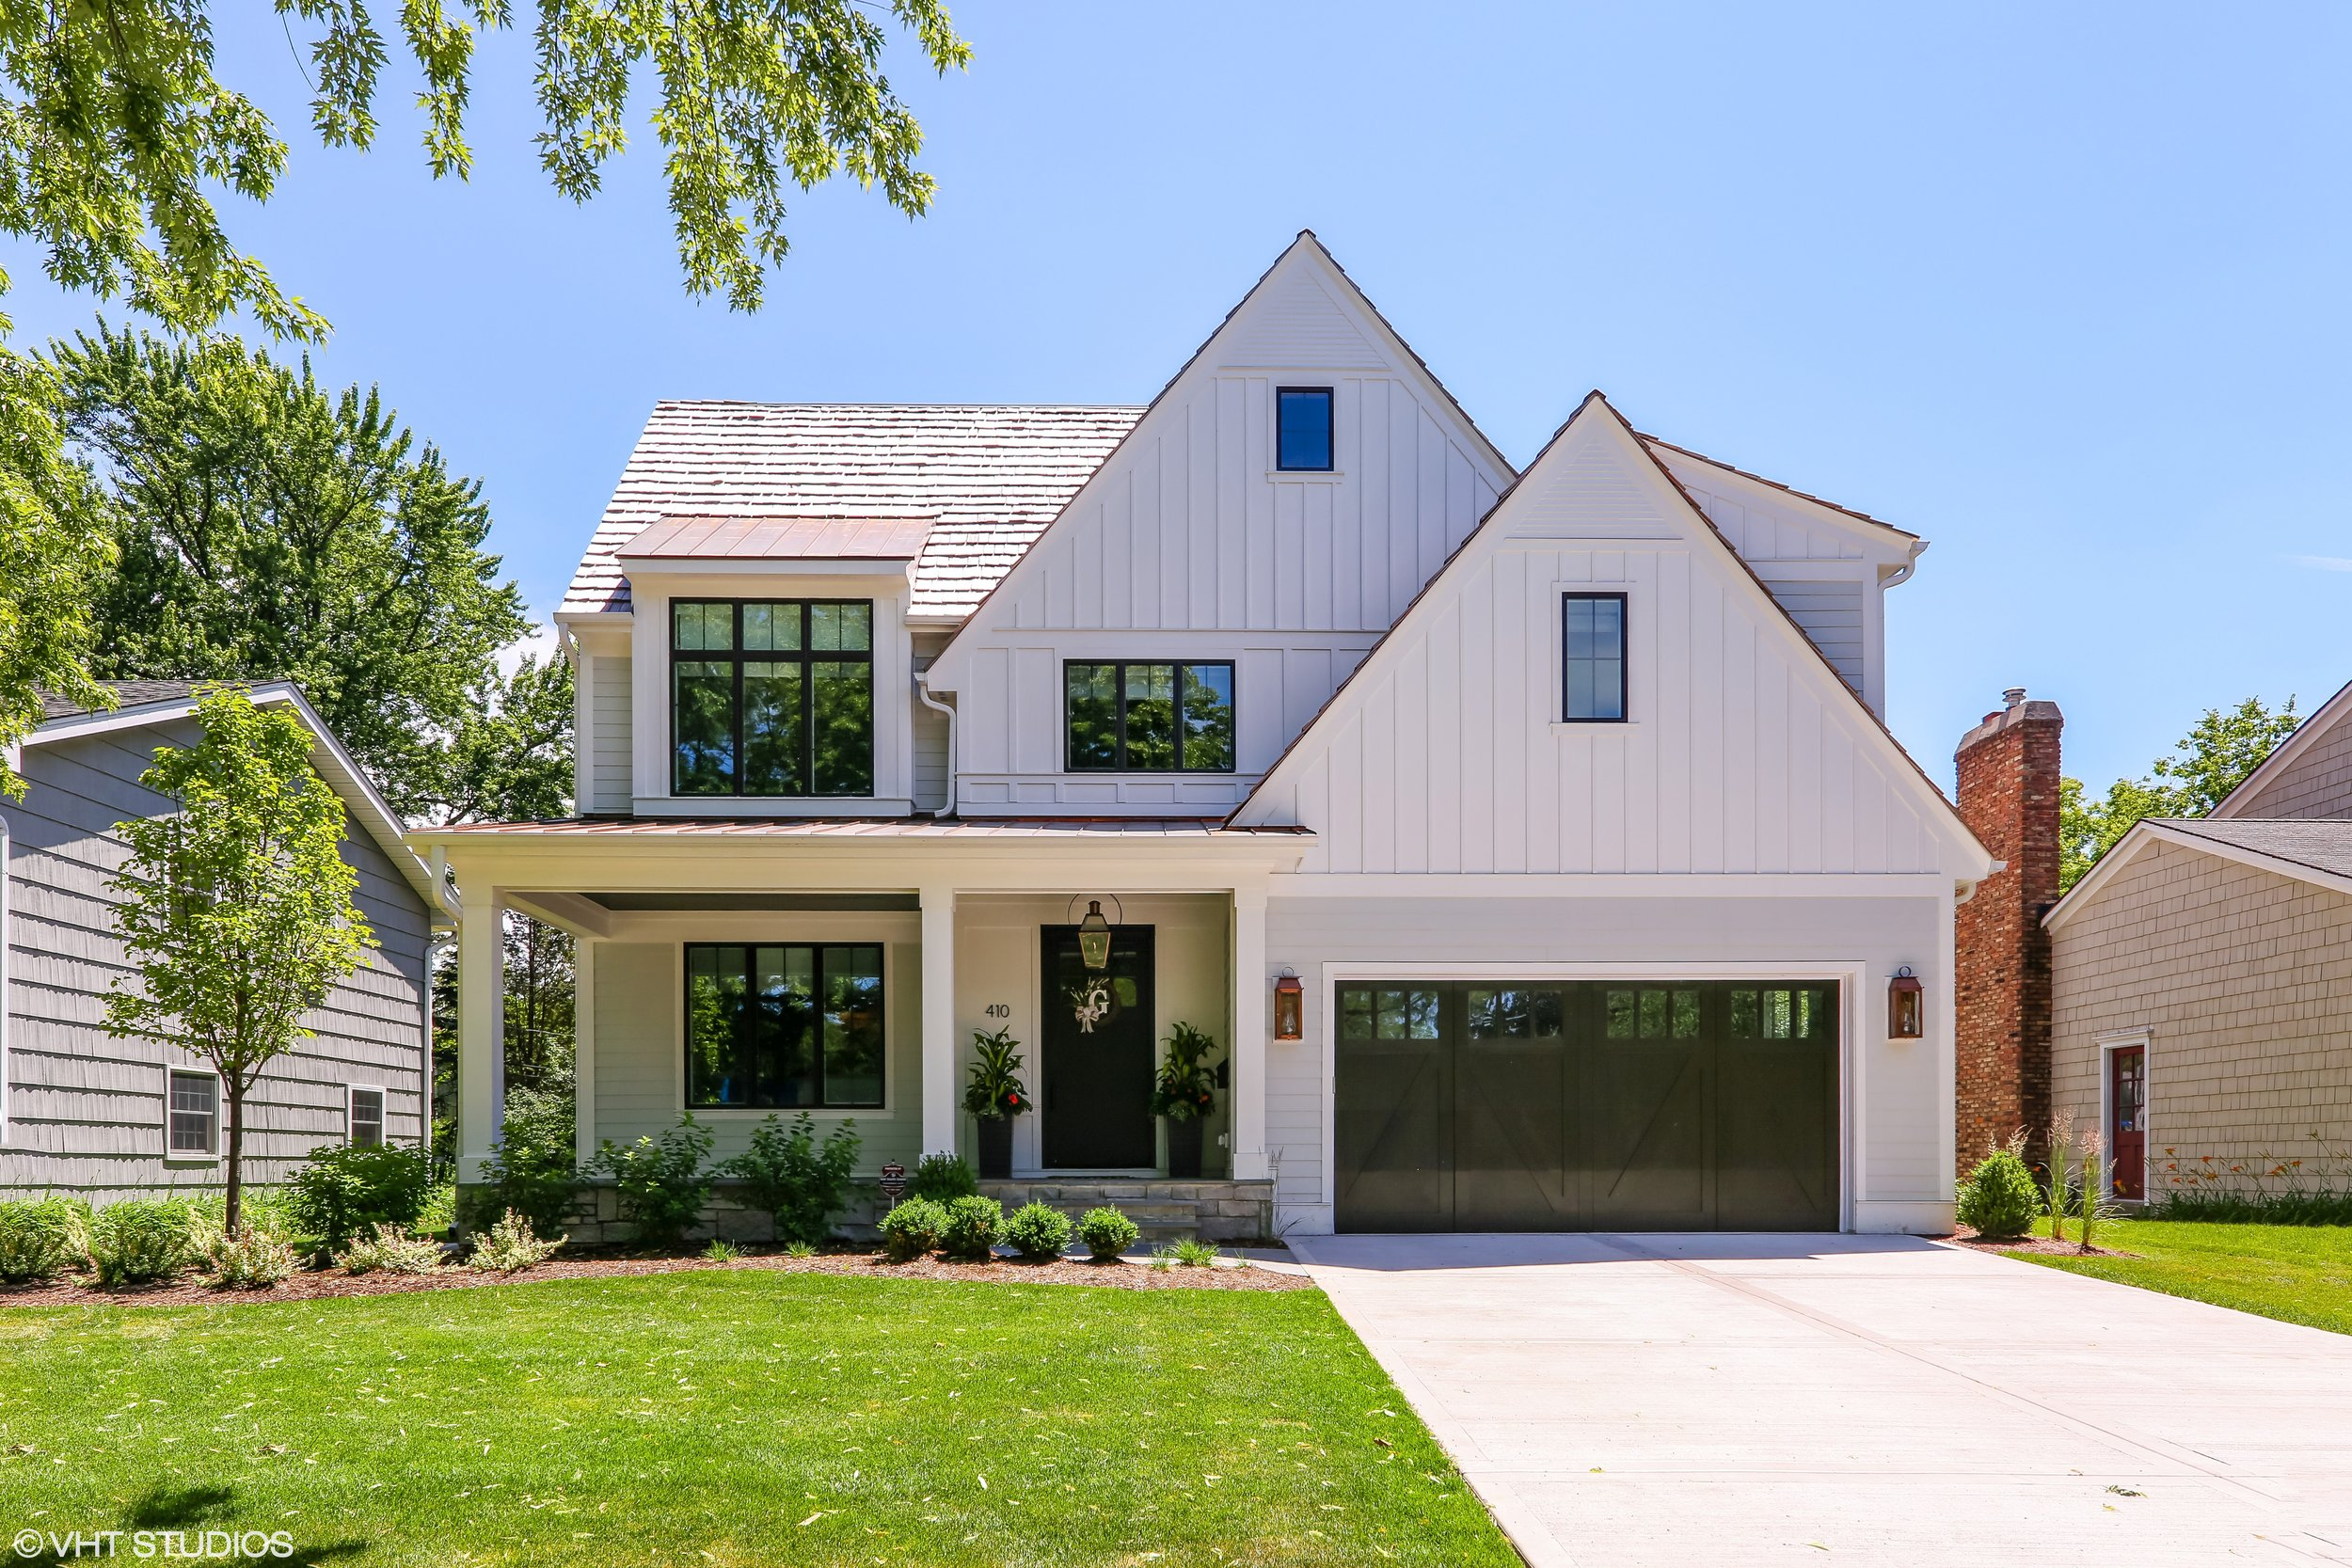 Modern Farmhouse in Hinsdale